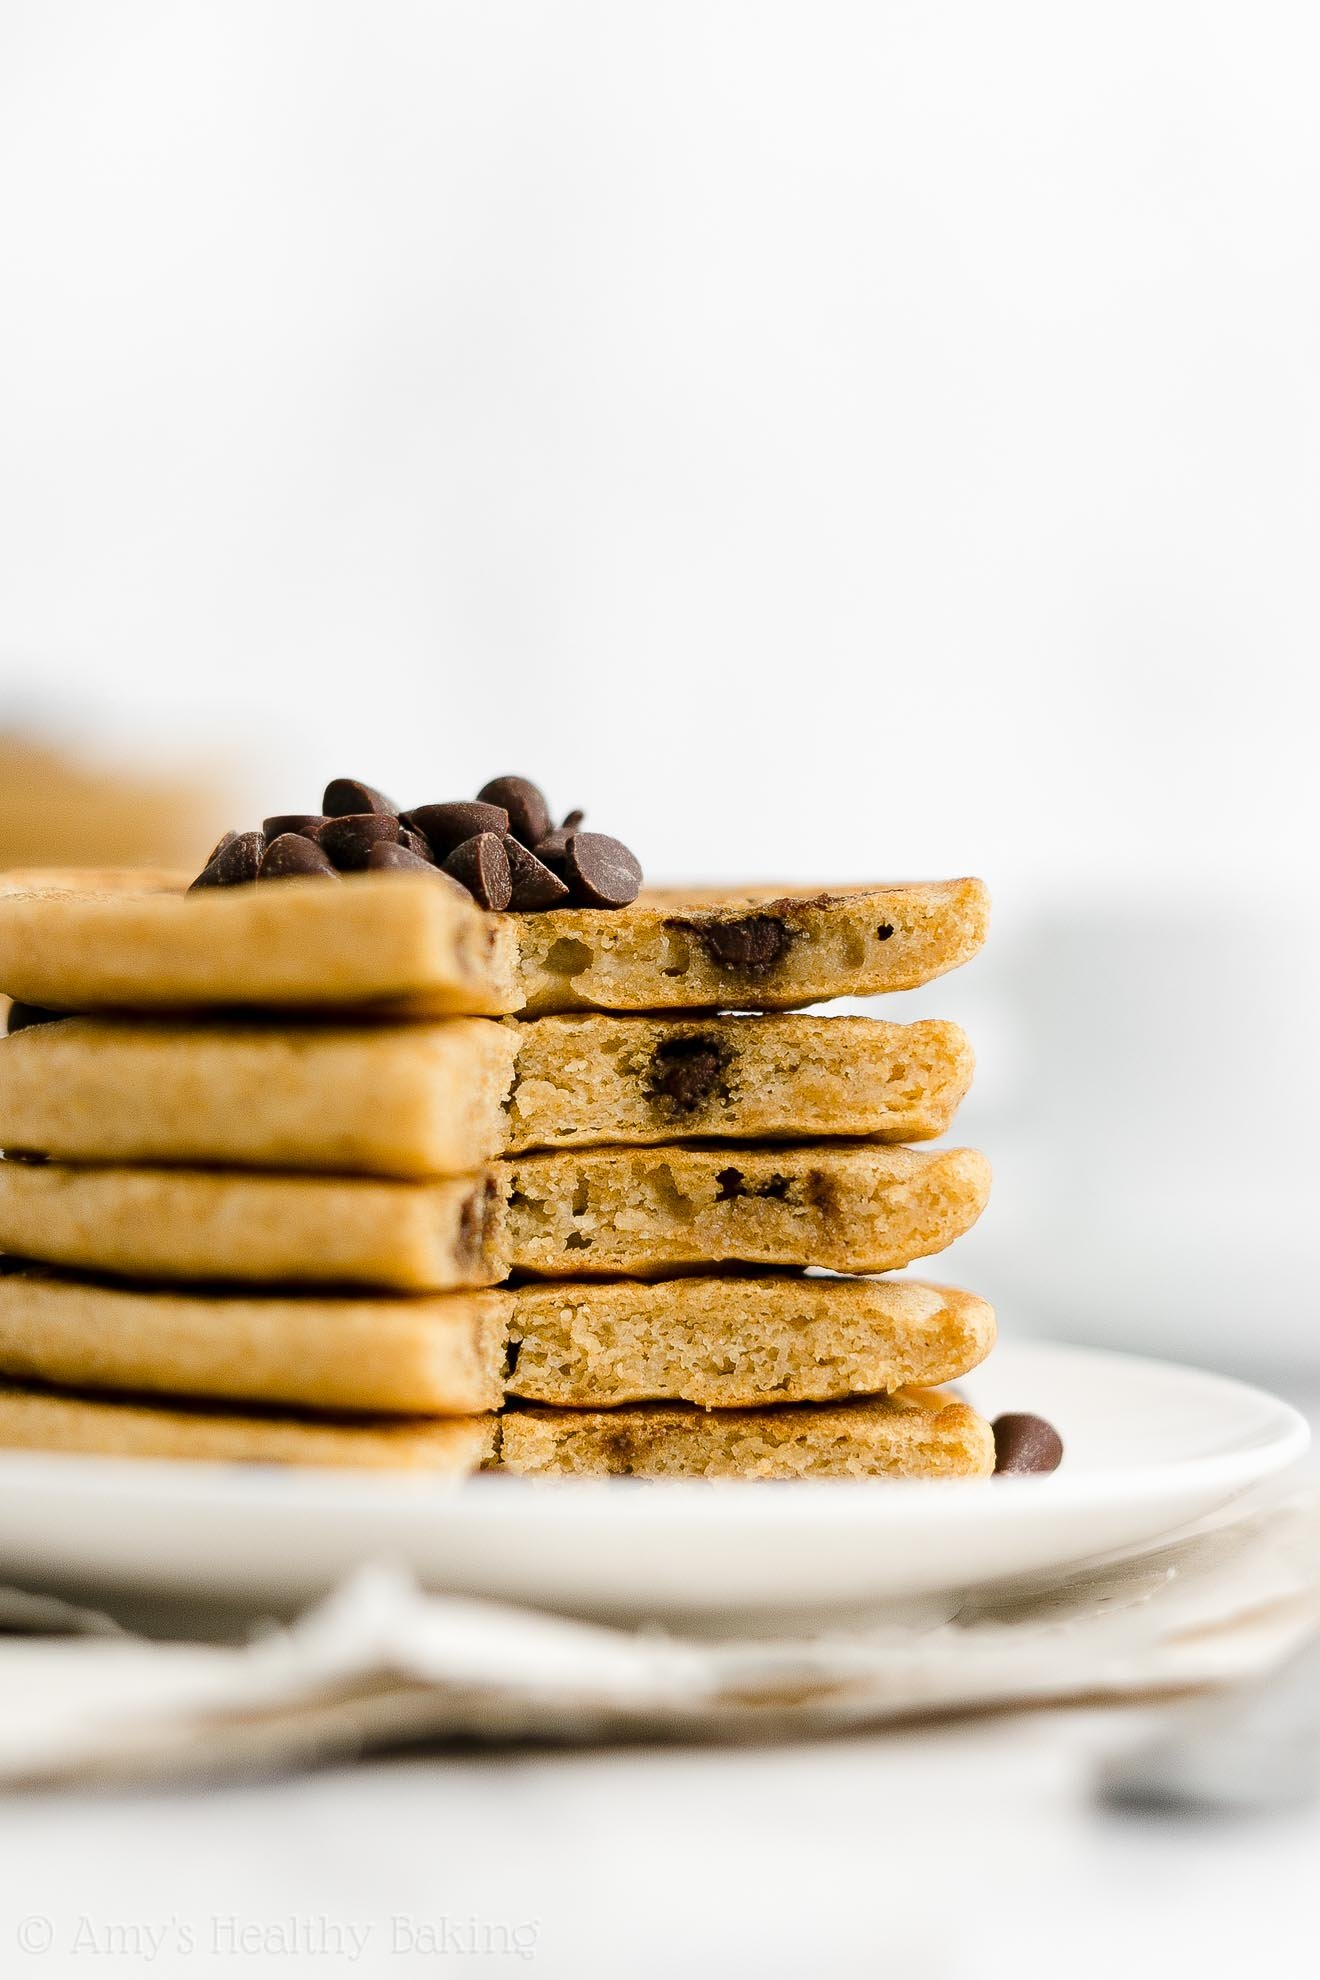 ULTIMATE Best Ever Easy Healthy Low Calorie Fluffy Chocolate Chip Pancakes